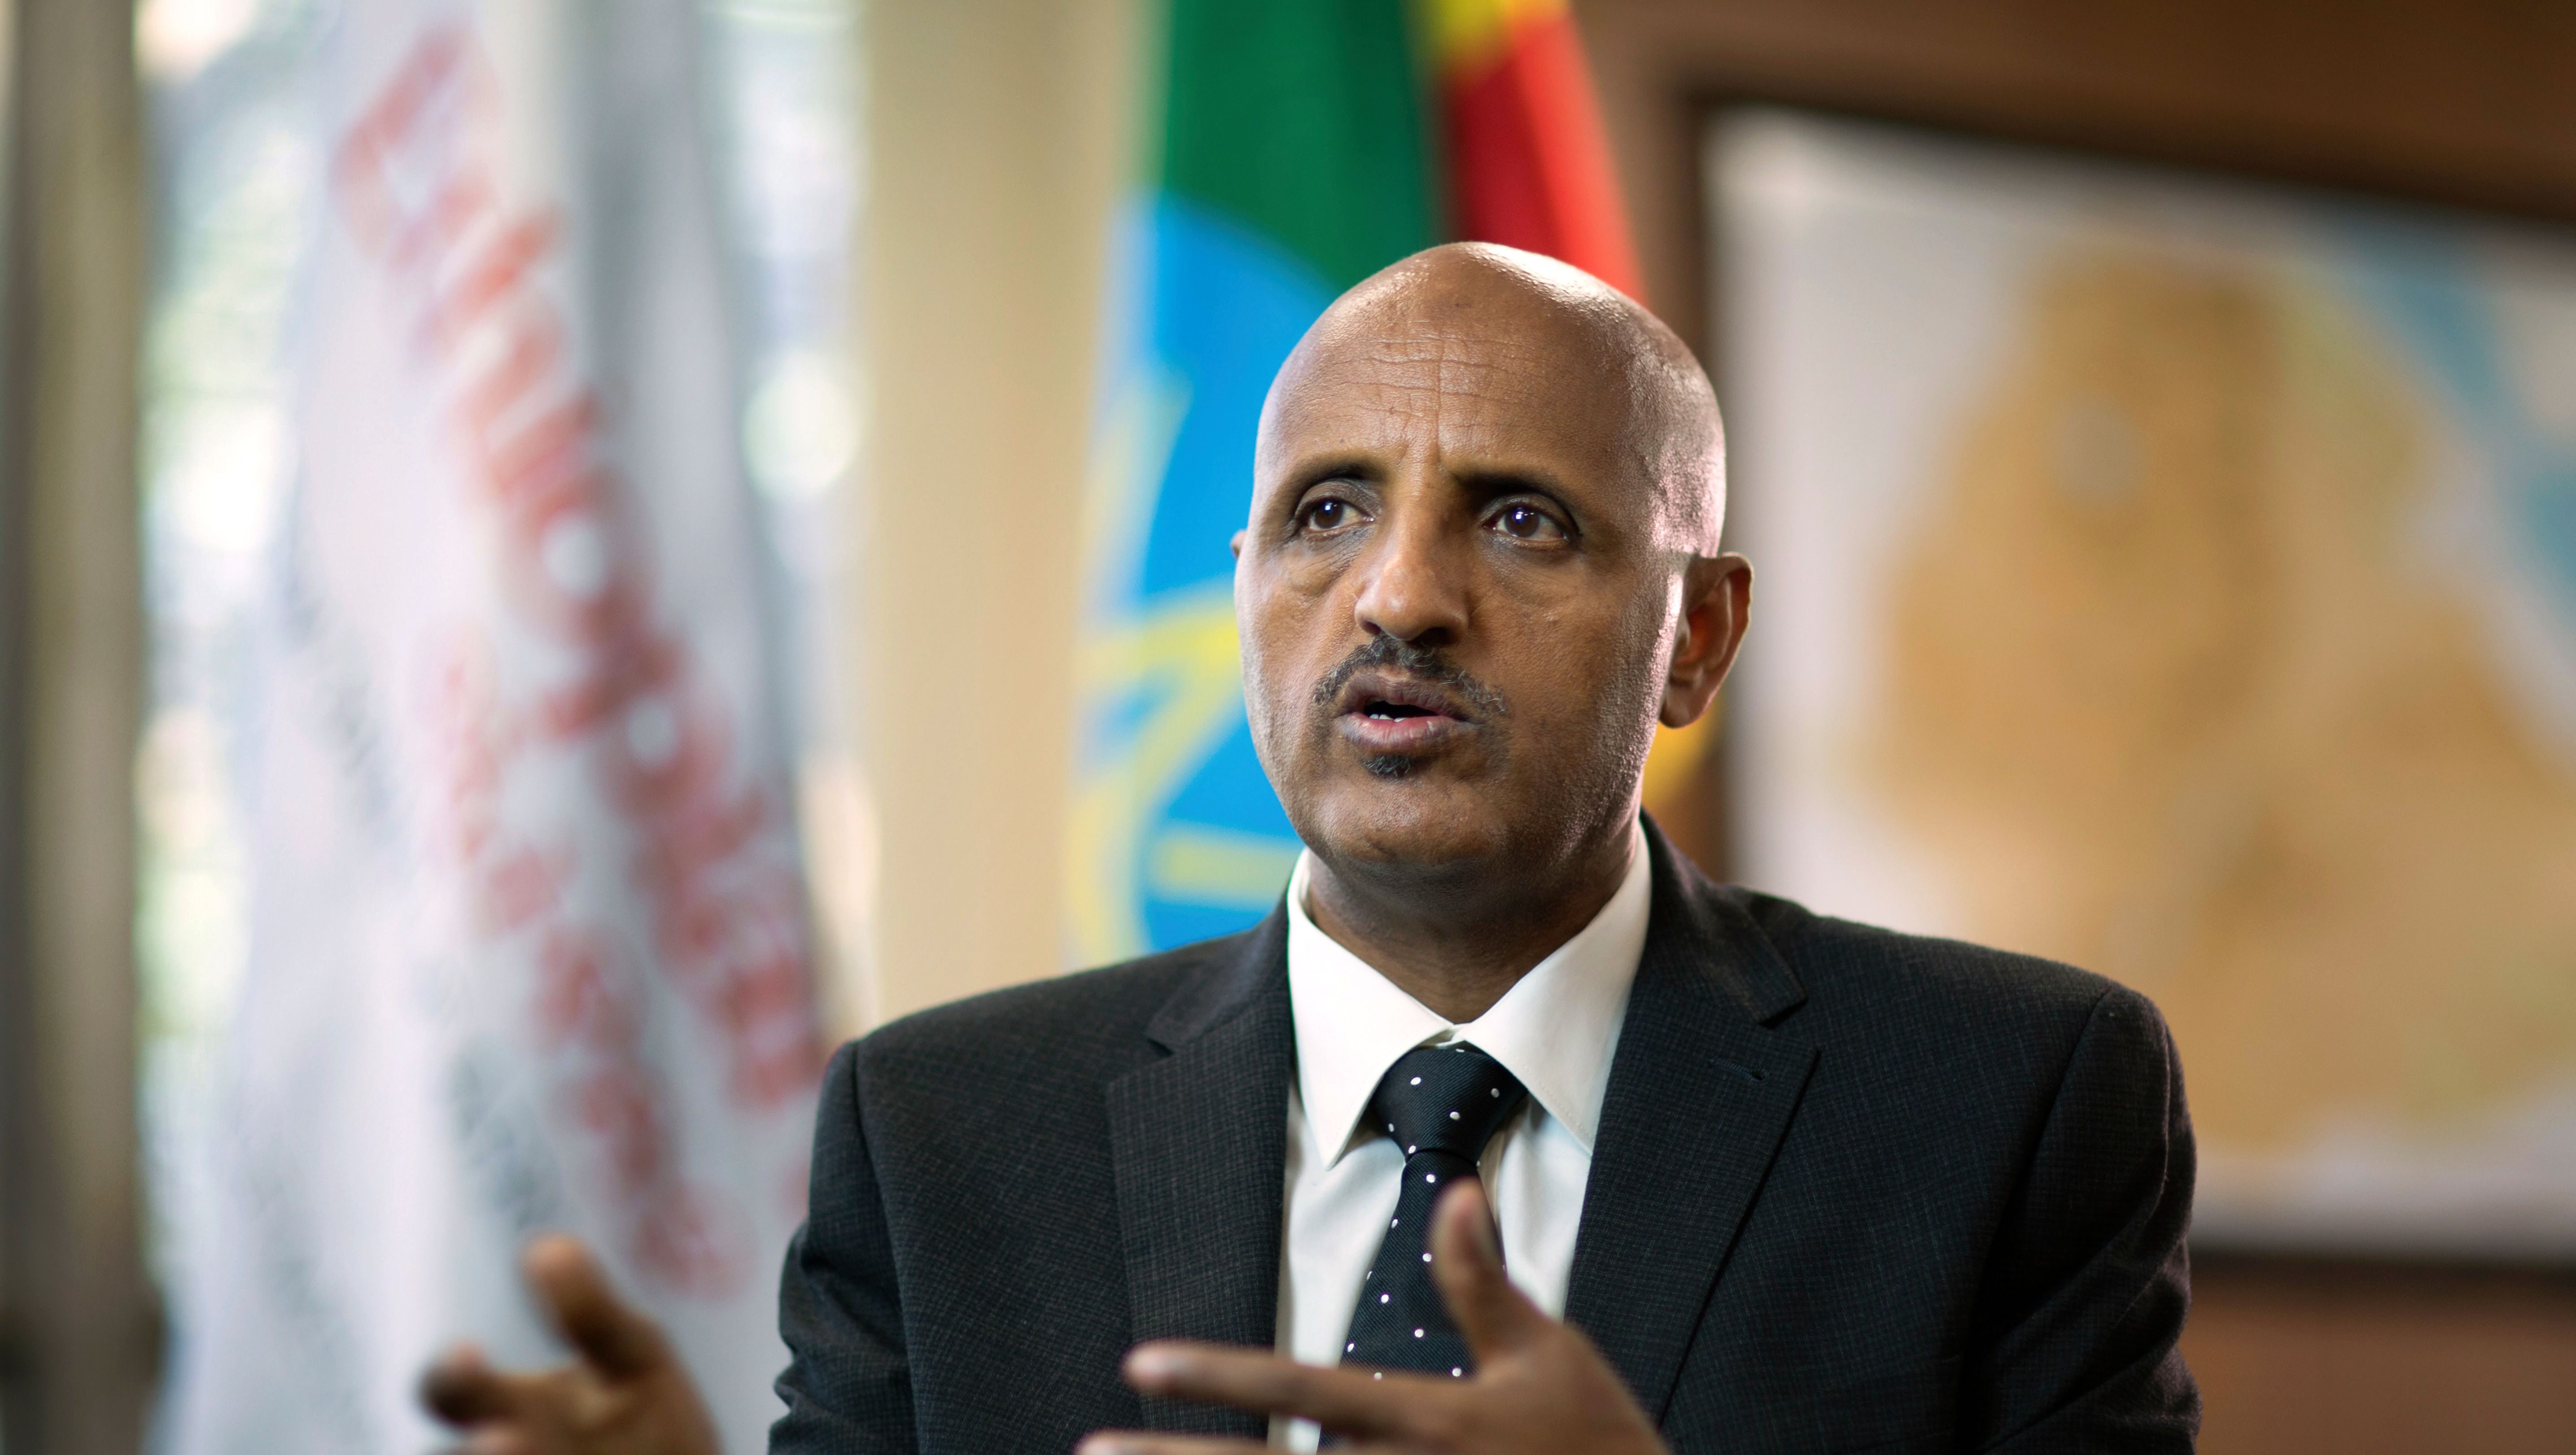 Tewolde Gebremariam, Chief Executive Officer of Ethiopian Airlines, speaks to The Associated Press at Bole International Airport in Addis Ababa, Ethiopia Saturday, March 23, 2019. The chief of Ethiopian Airlines says the warning and training requirements set for the now-grounded 737 Max aircraft may not have been enough following the Ethiopian Airlines plane crash that killed 157 people.